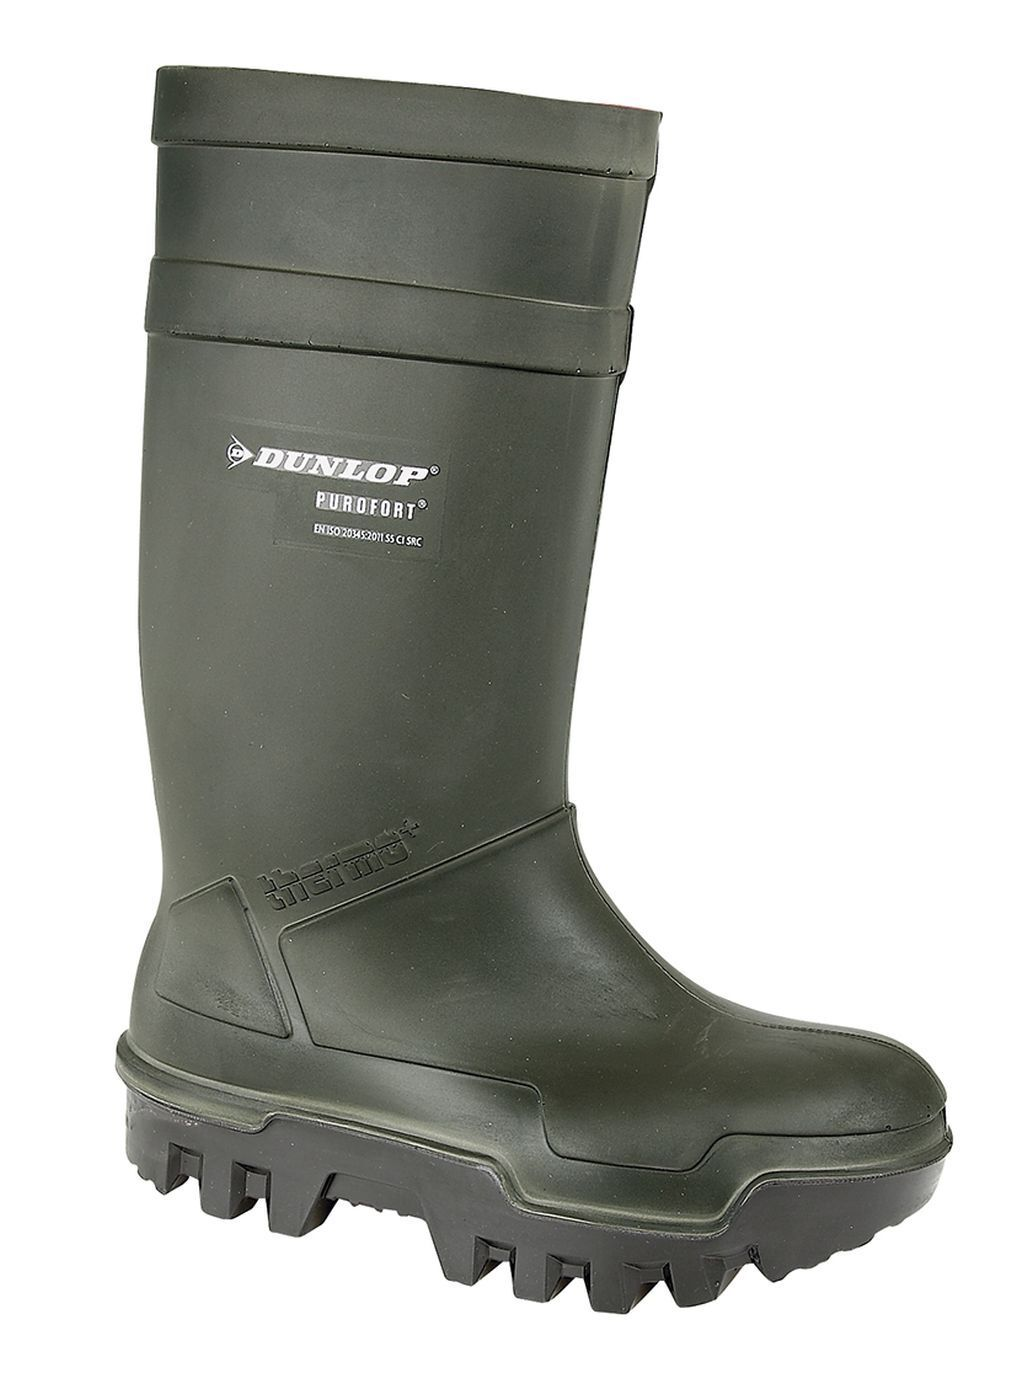 DUNLOP PUROFORT THERMO PLUS SAFETY WELLIES WELLYS WELLINGTONS 7 8 9 10 11 12 13